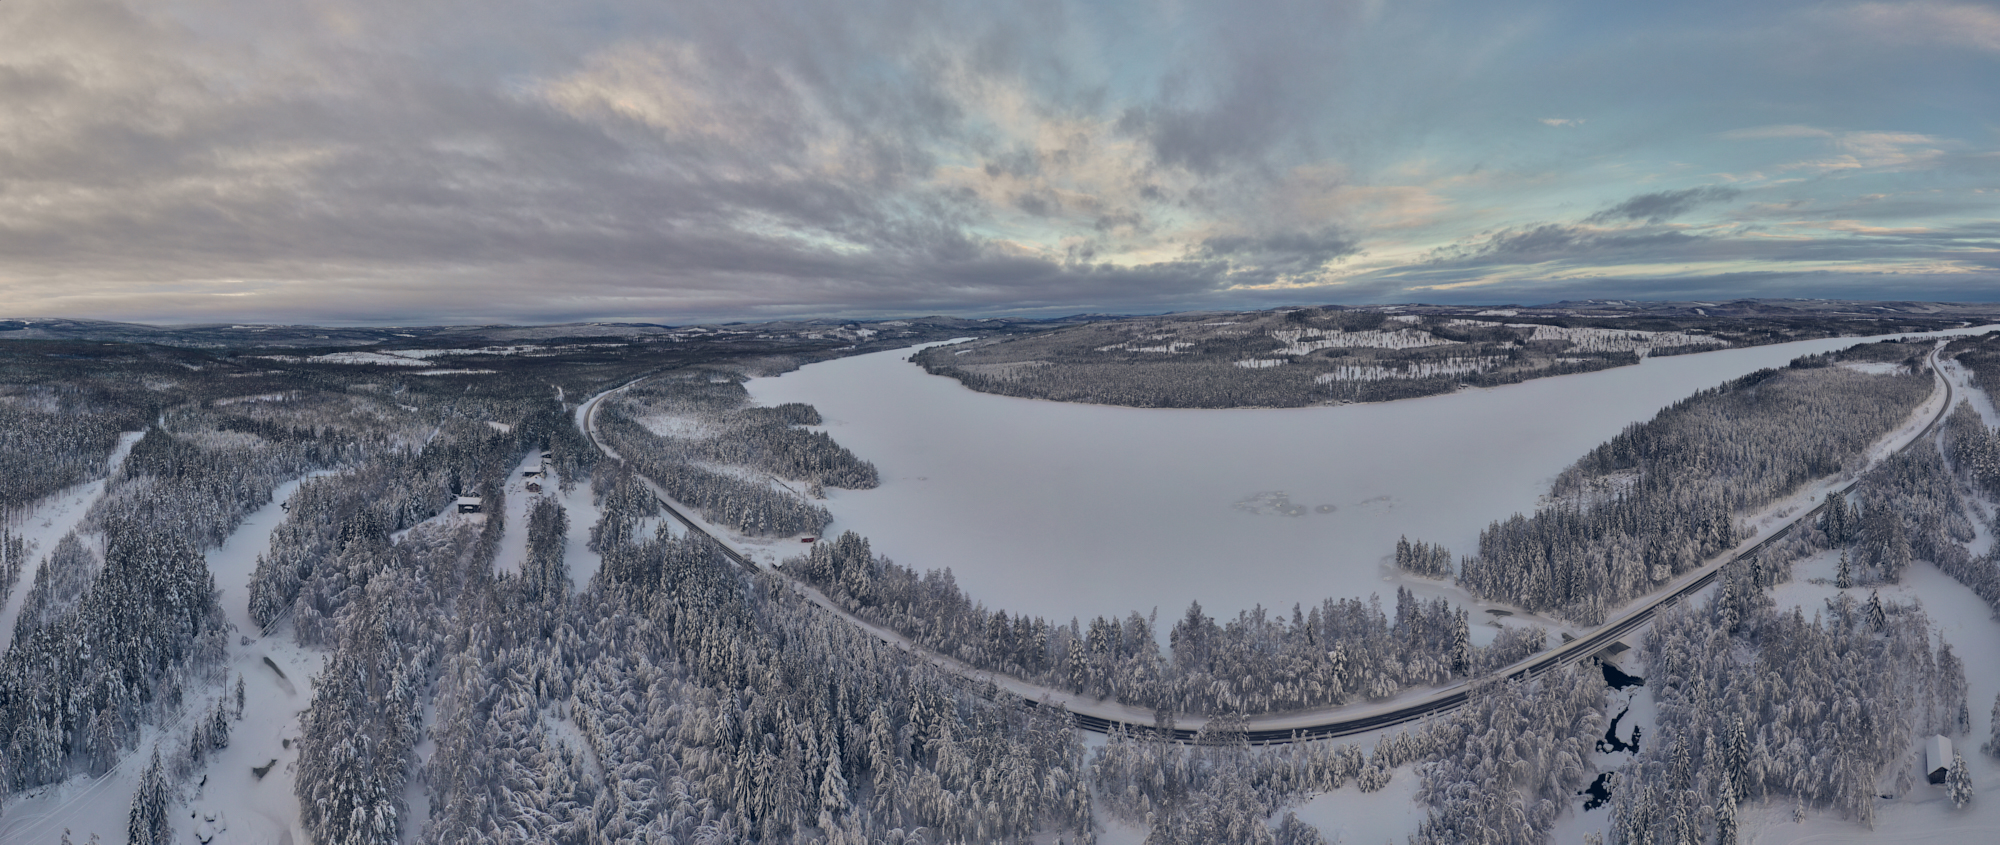 Zweden-2018-[Group 0]-PANO0001_PANO0021-21 images.jpg